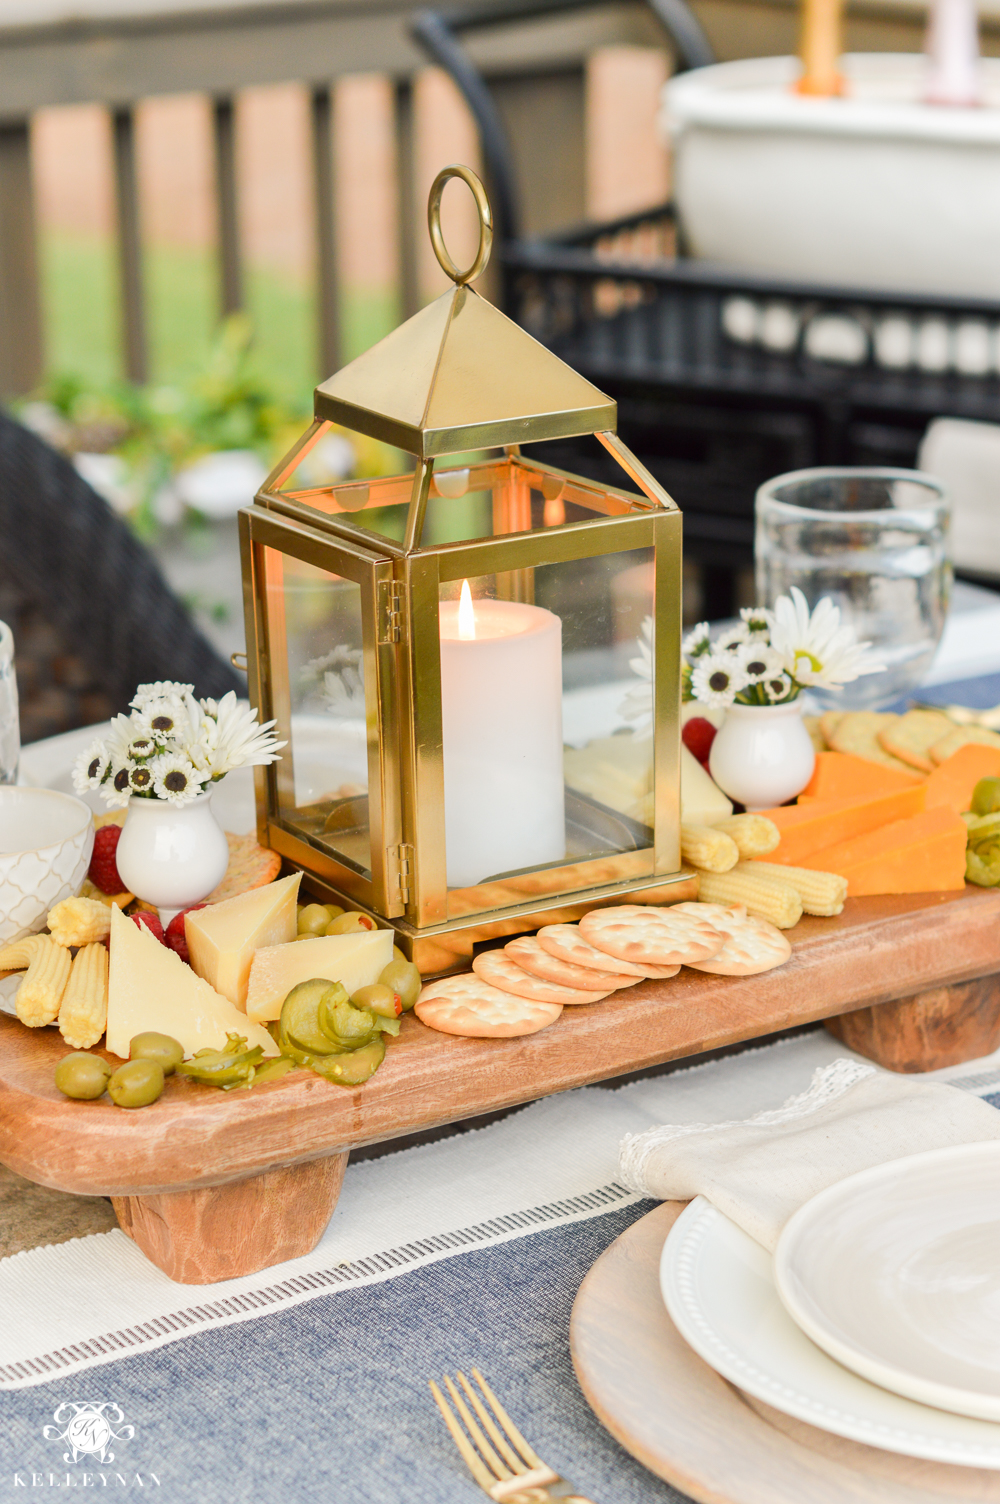 Appetizers and cheese boards a different centerpiece for for Patio table centerpiece ideas